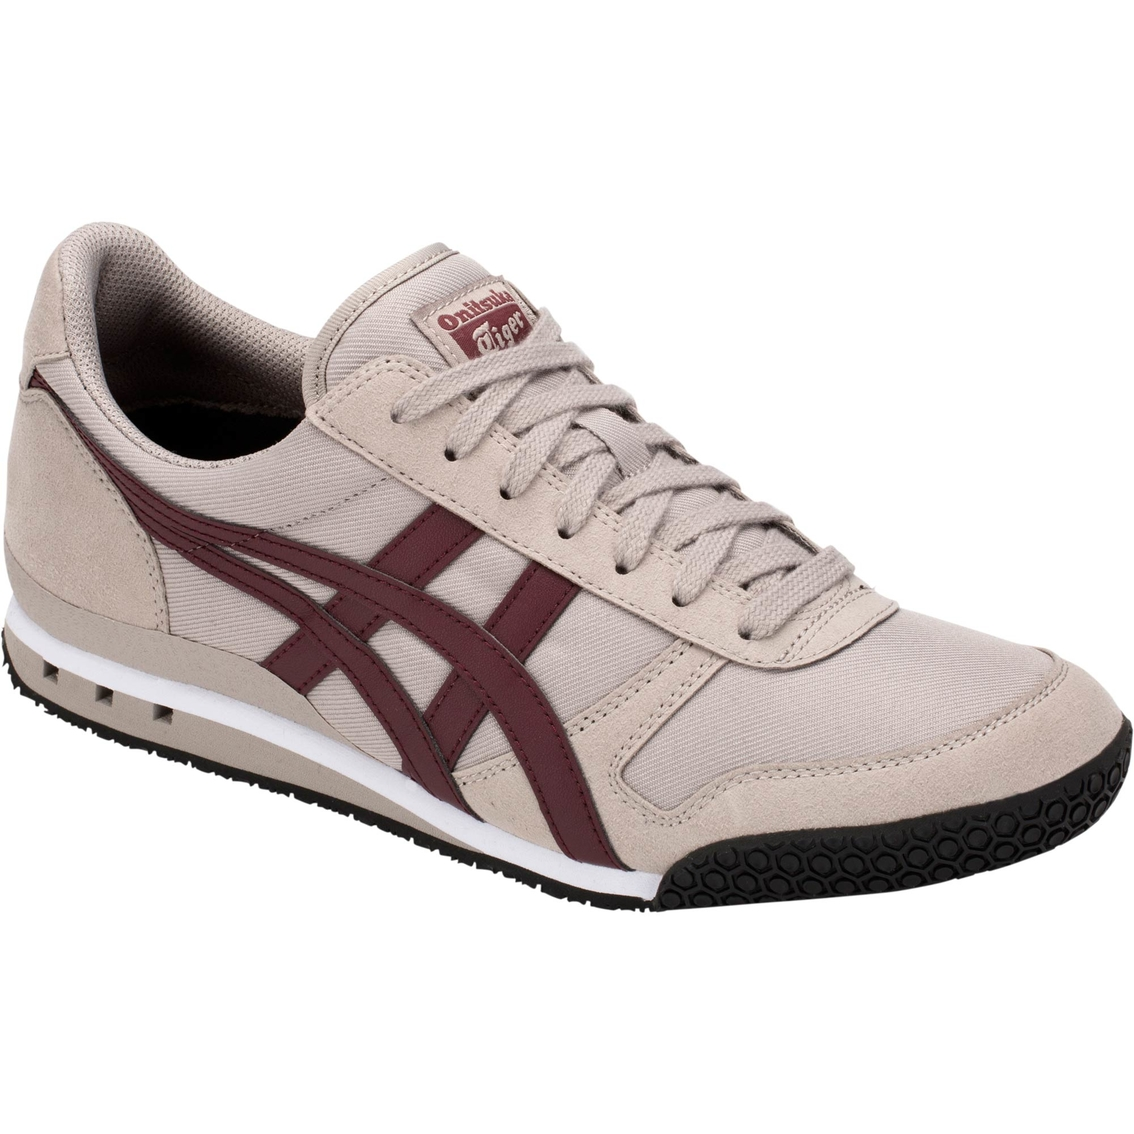 best sneakers 98519 81280 Asics Men's Onitsuka Tiger Ultimate 81 Sneakers | Casuals ...